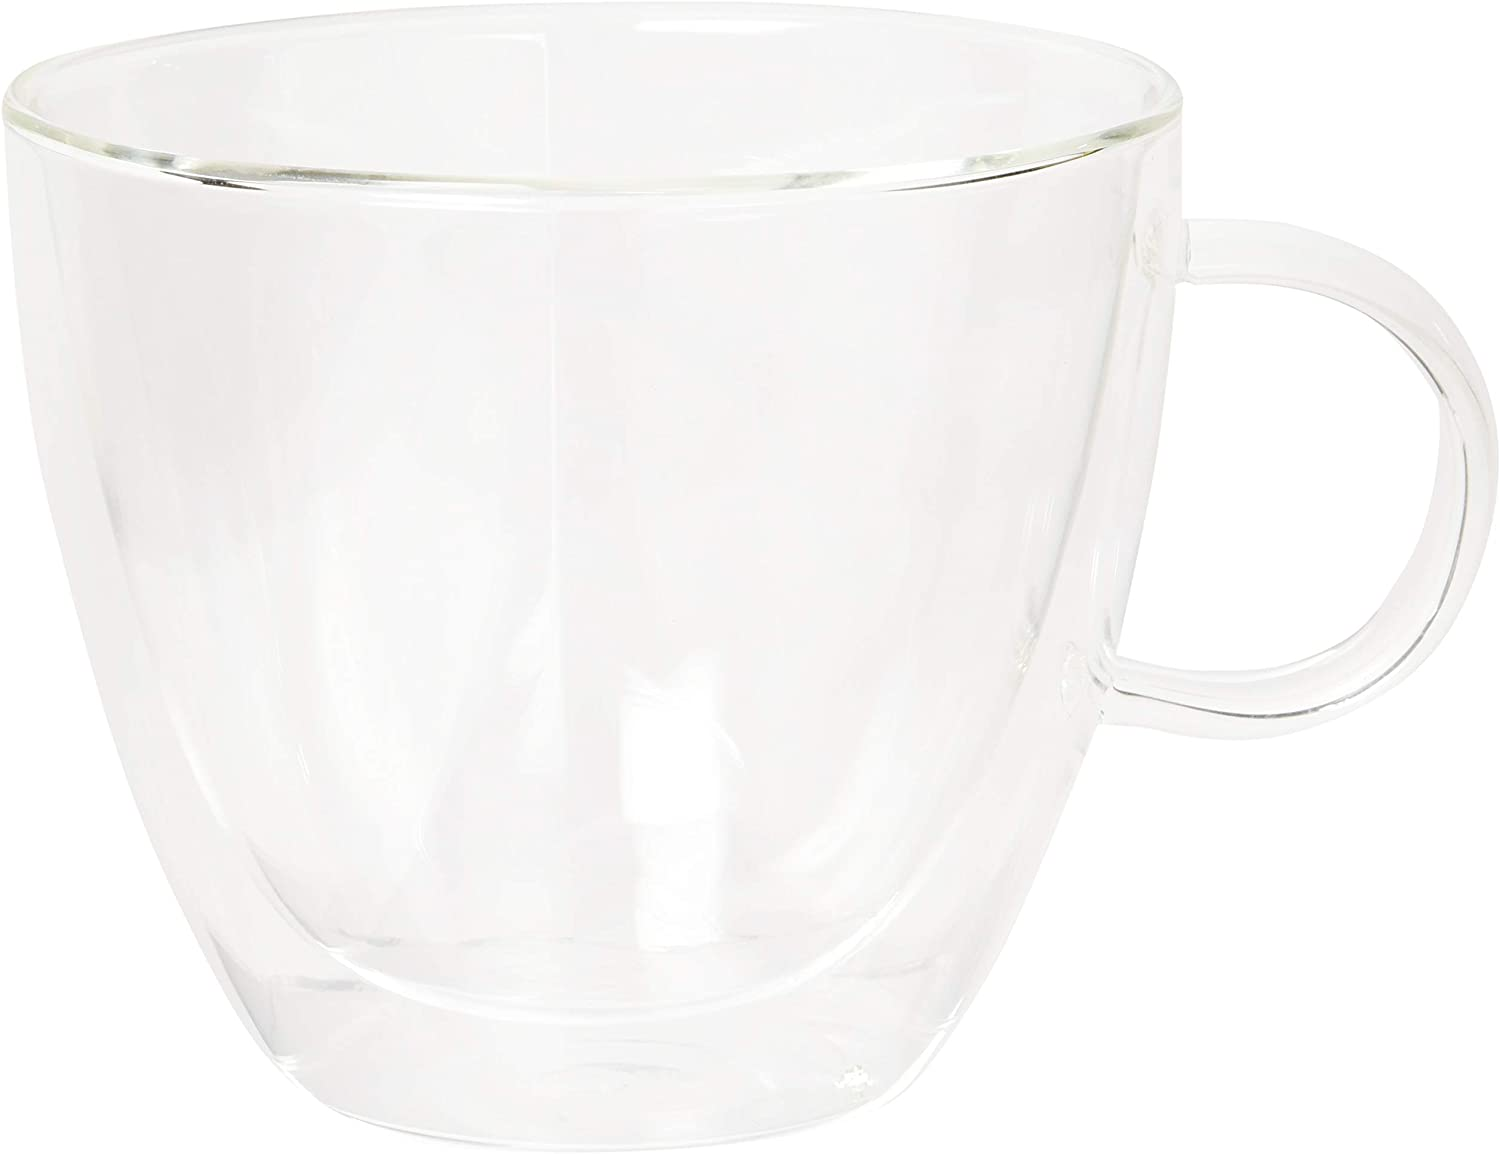 Villeroy & Boch Artesano Hot Beverages Cup (Set of 2), Large, Clear